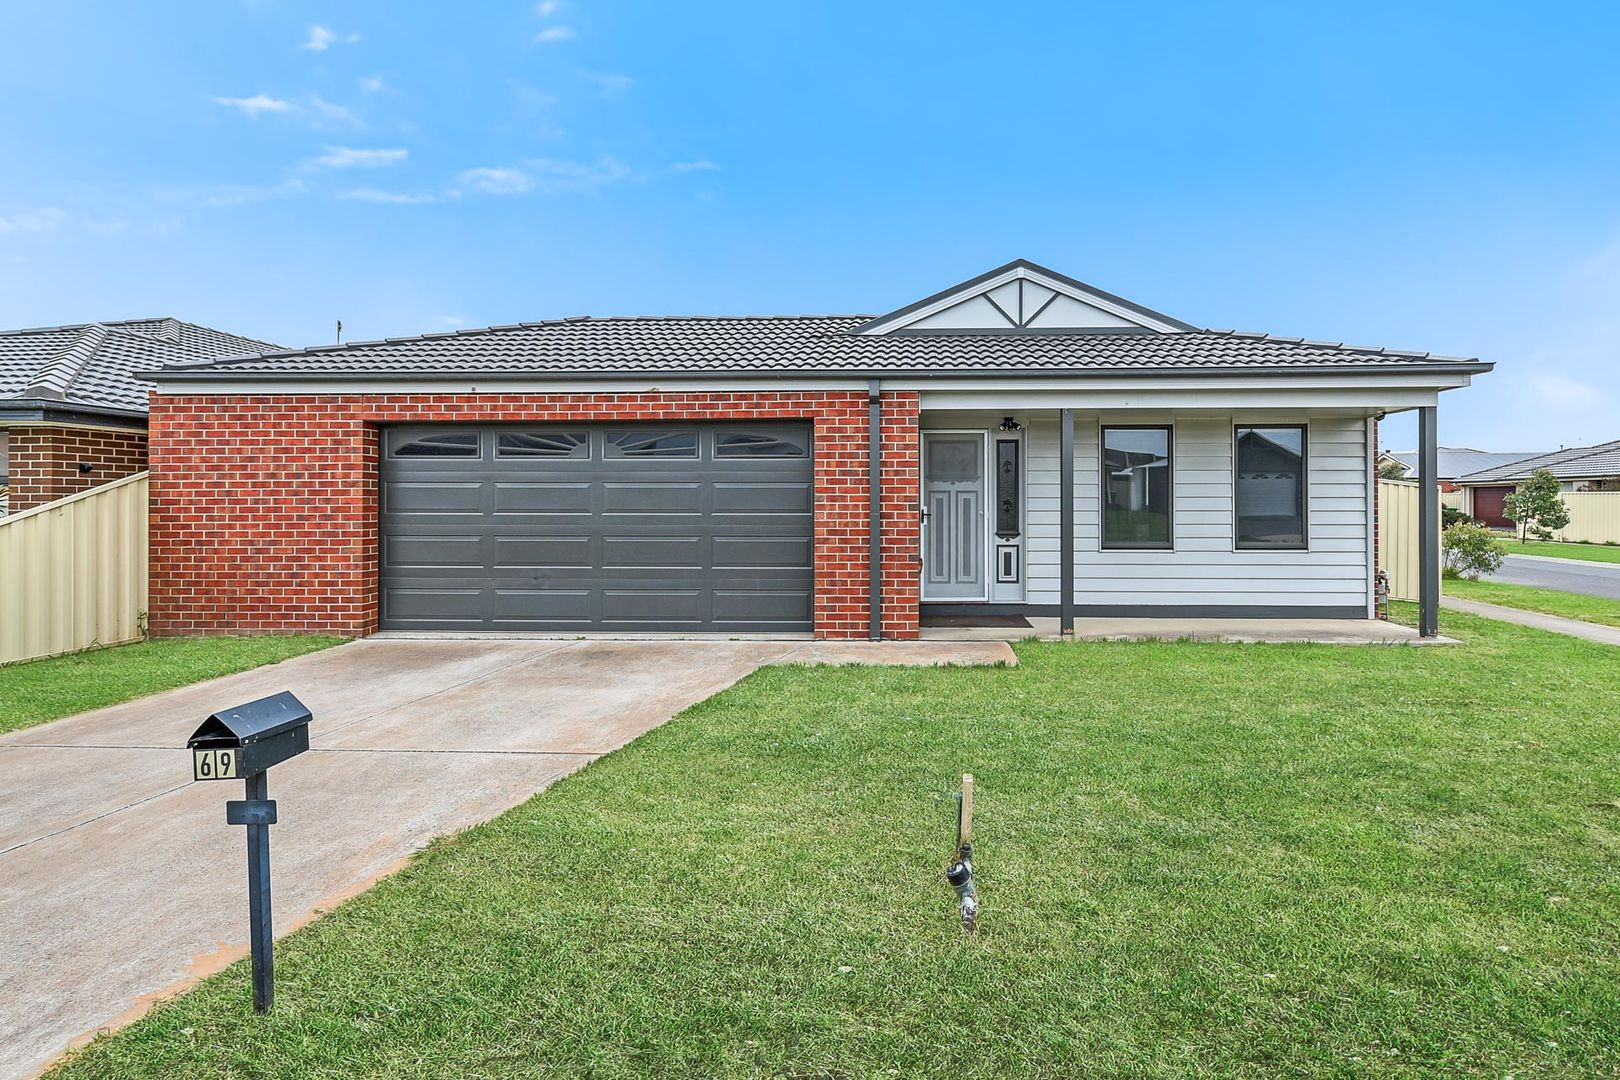 69 Blue Horizons Way, Pakenham VIC 3810, Image 0